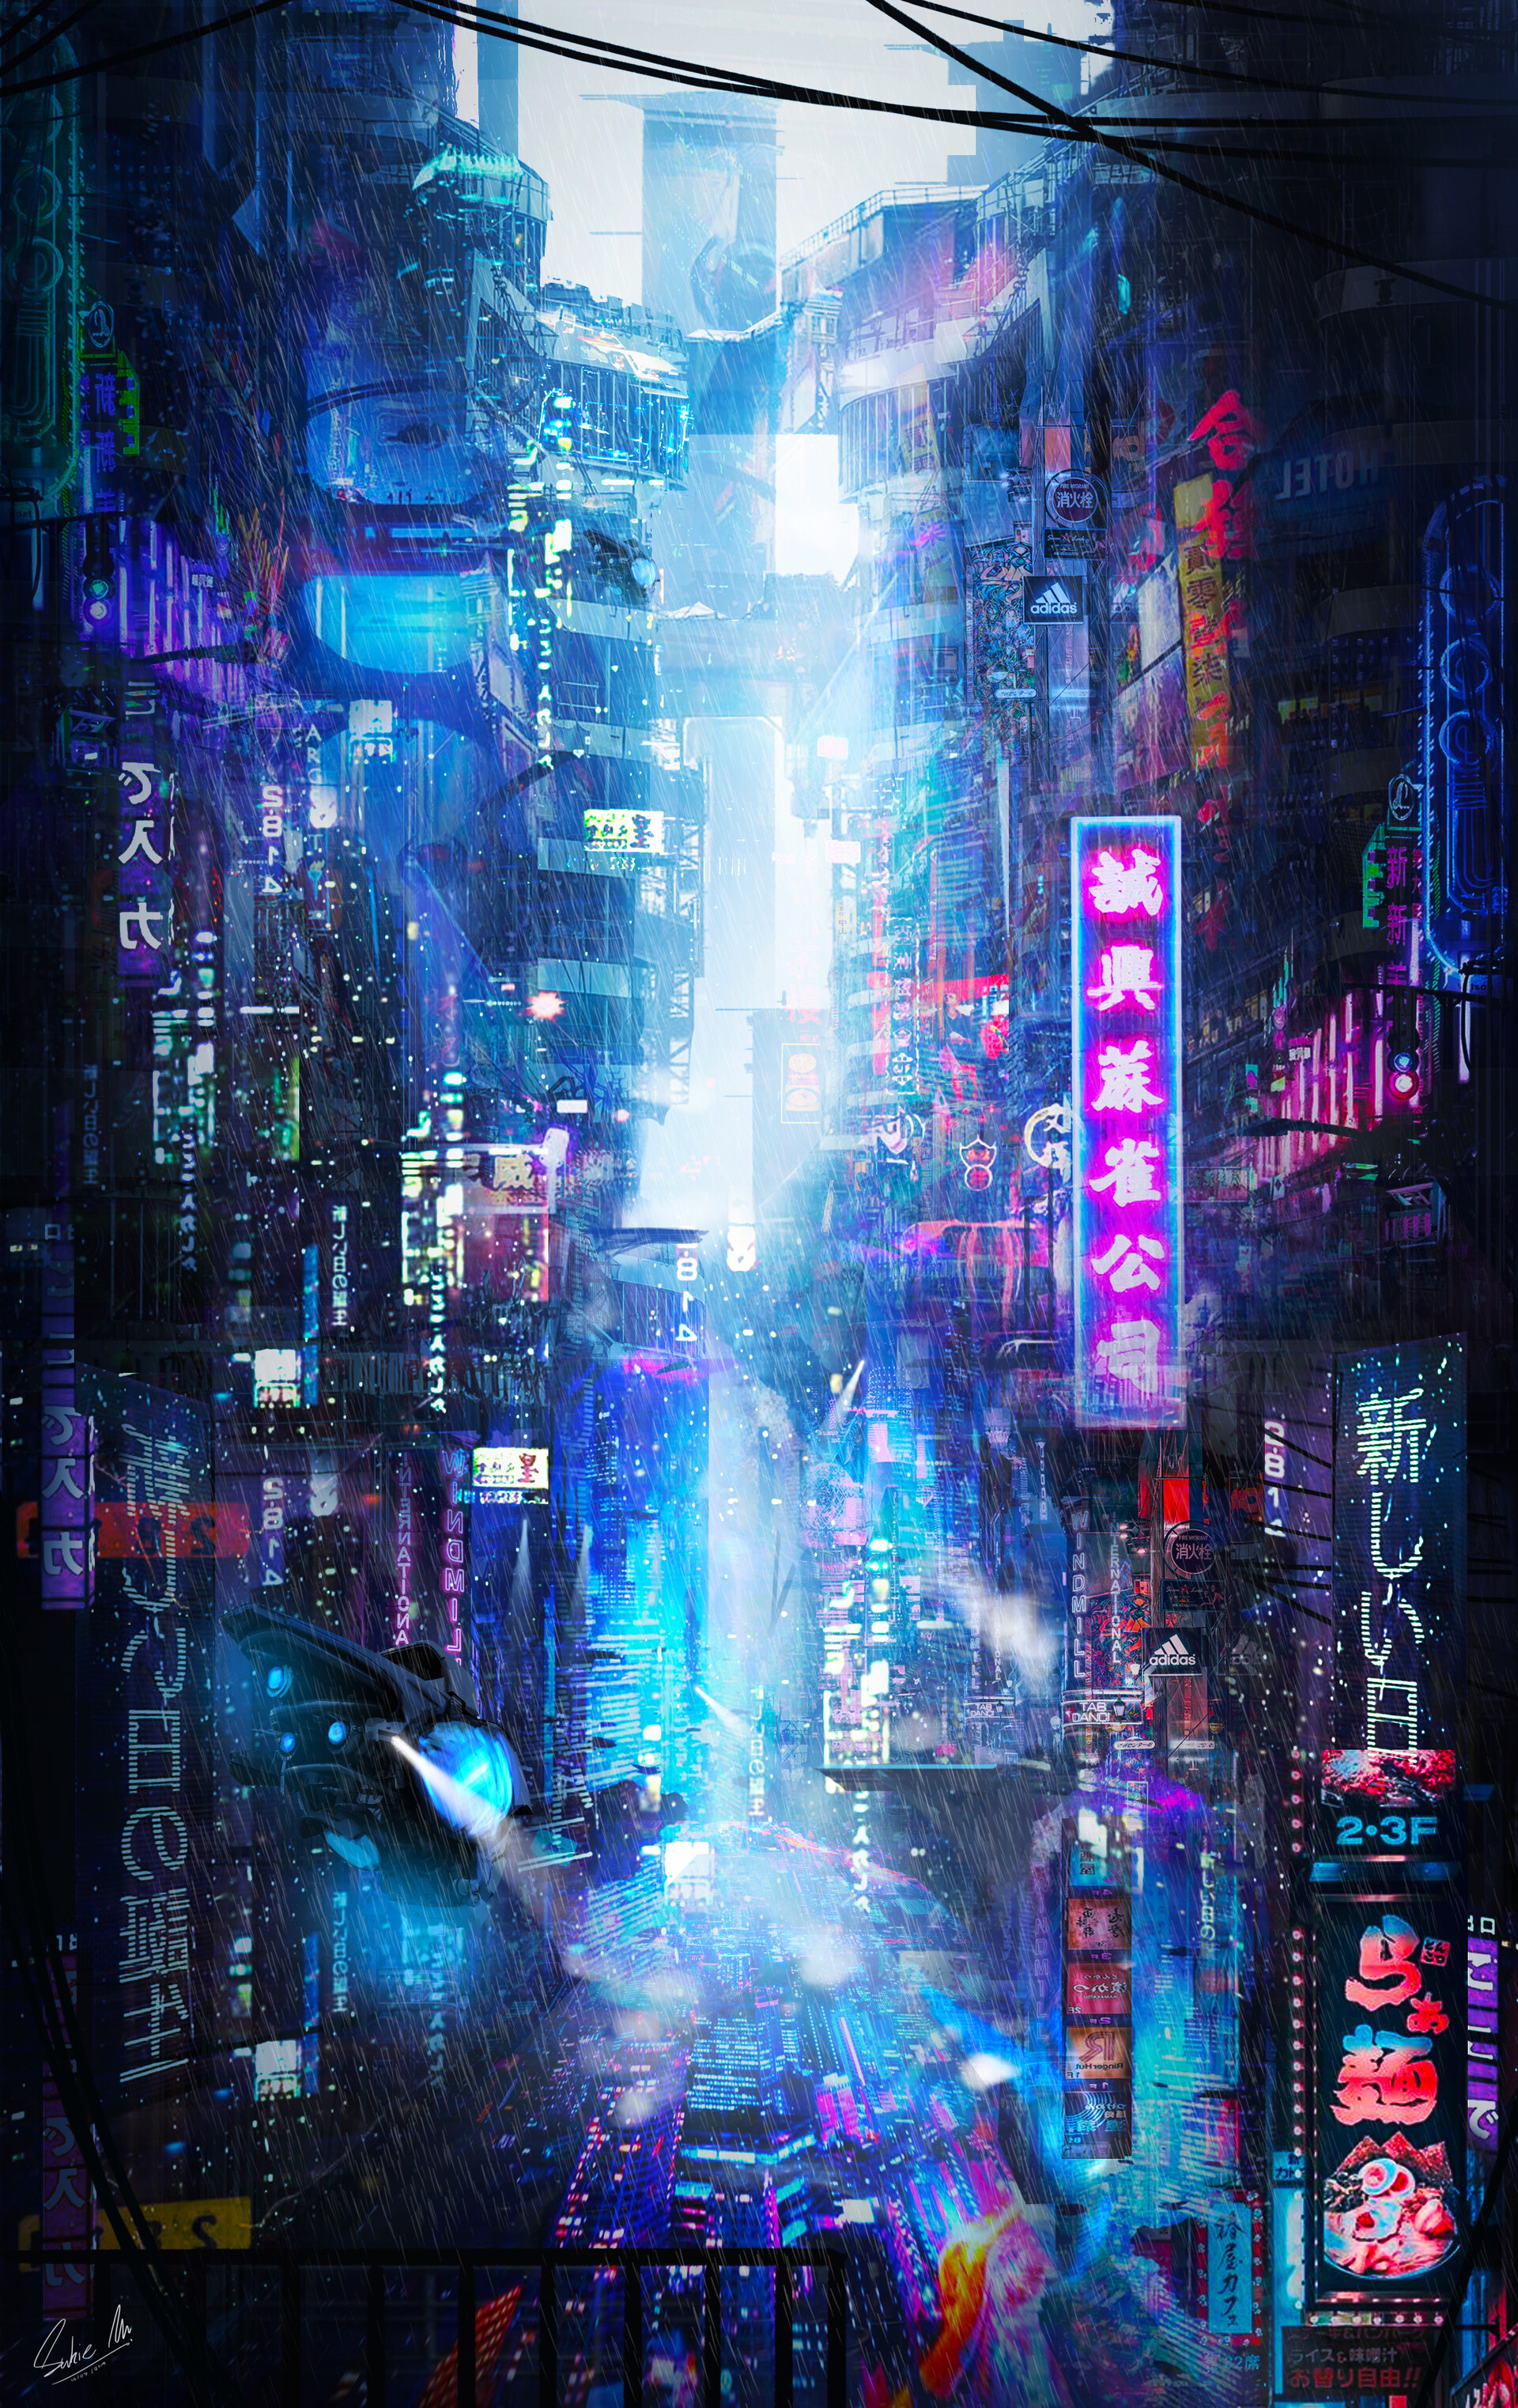 128775 download wallpaper Neon, Art, Rain, City, Future screensavers and pictures for free